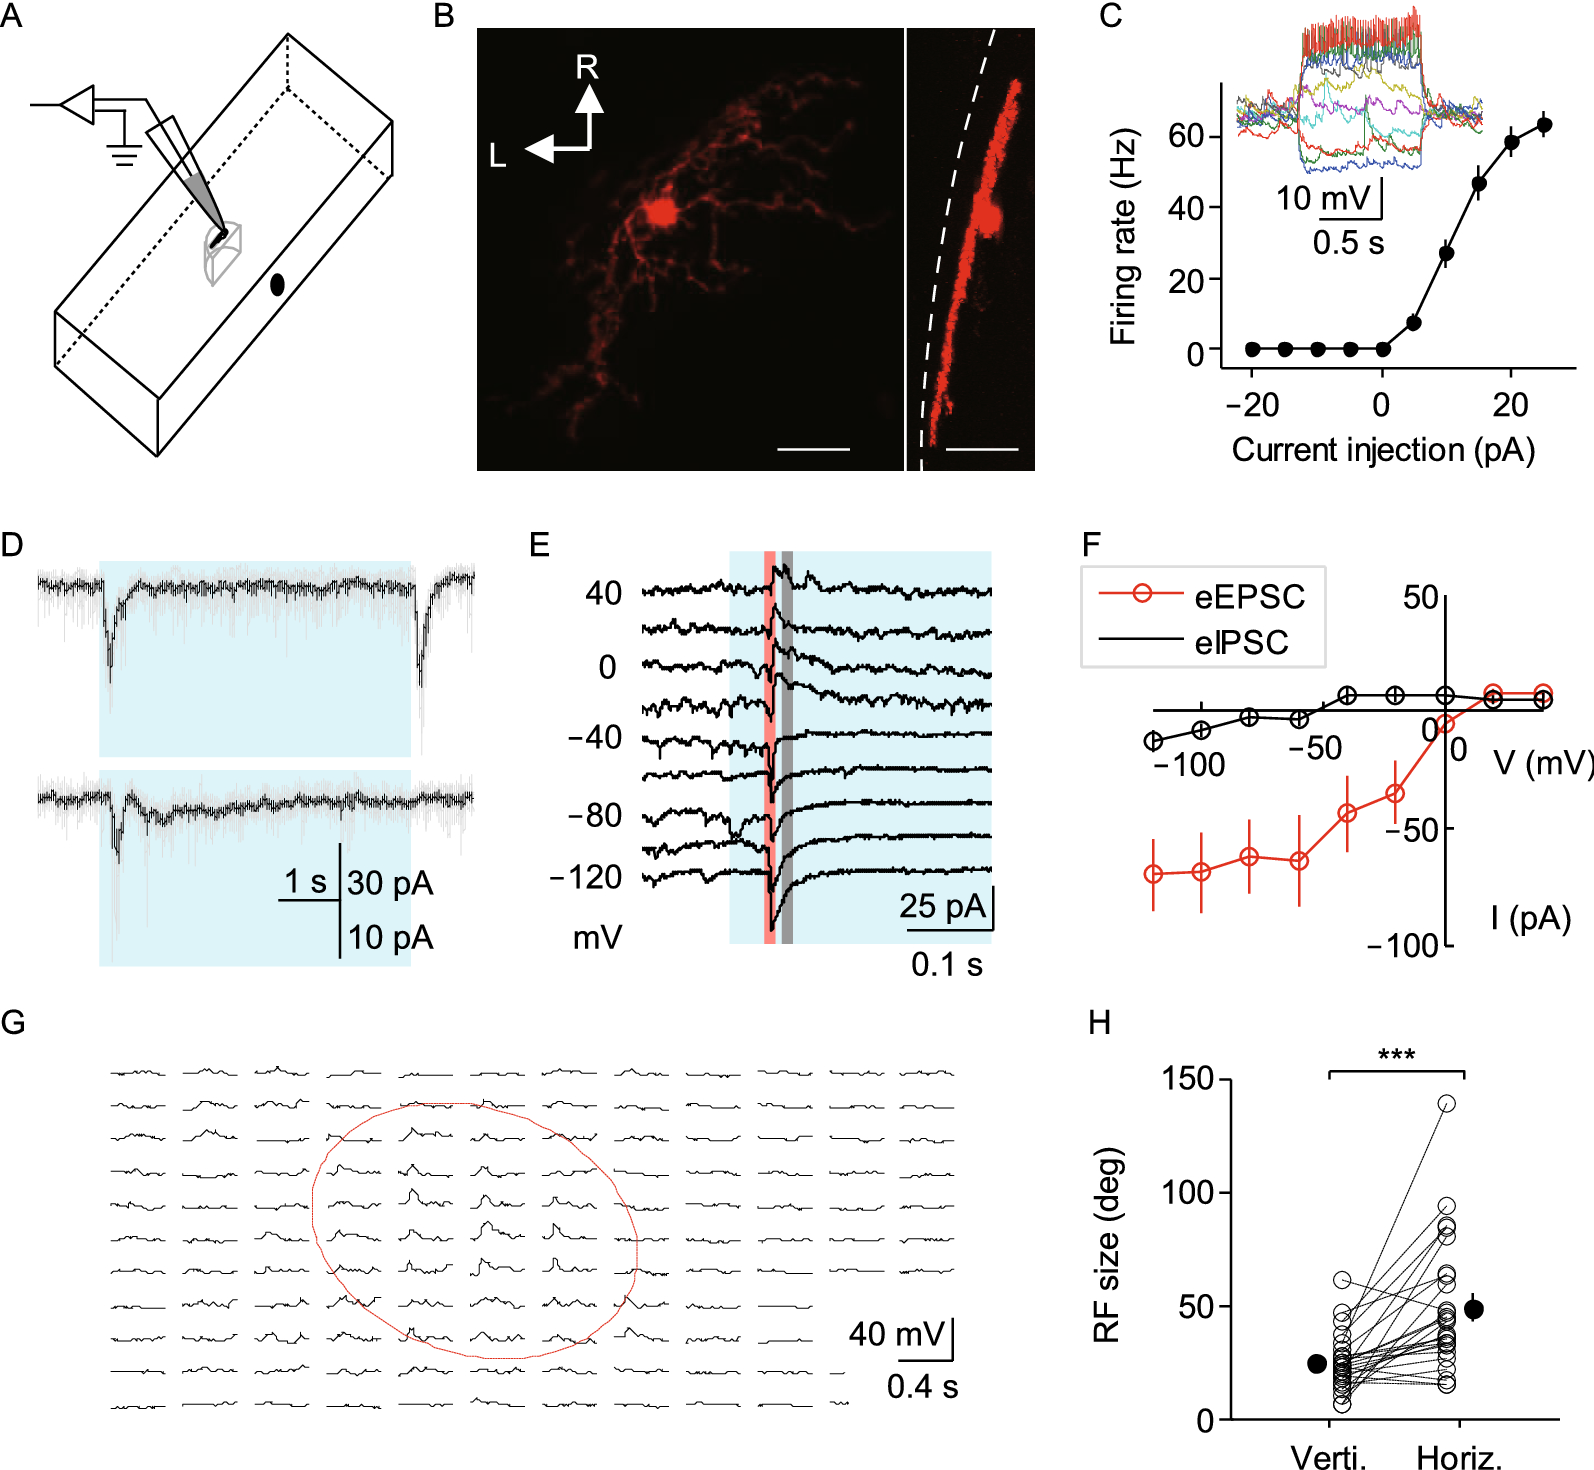 Optic Tectal Superficial Interneurons Detect Motion In Larval Simple 1 Amp Current Injector Circuit Diagram Circuits Lab Figure